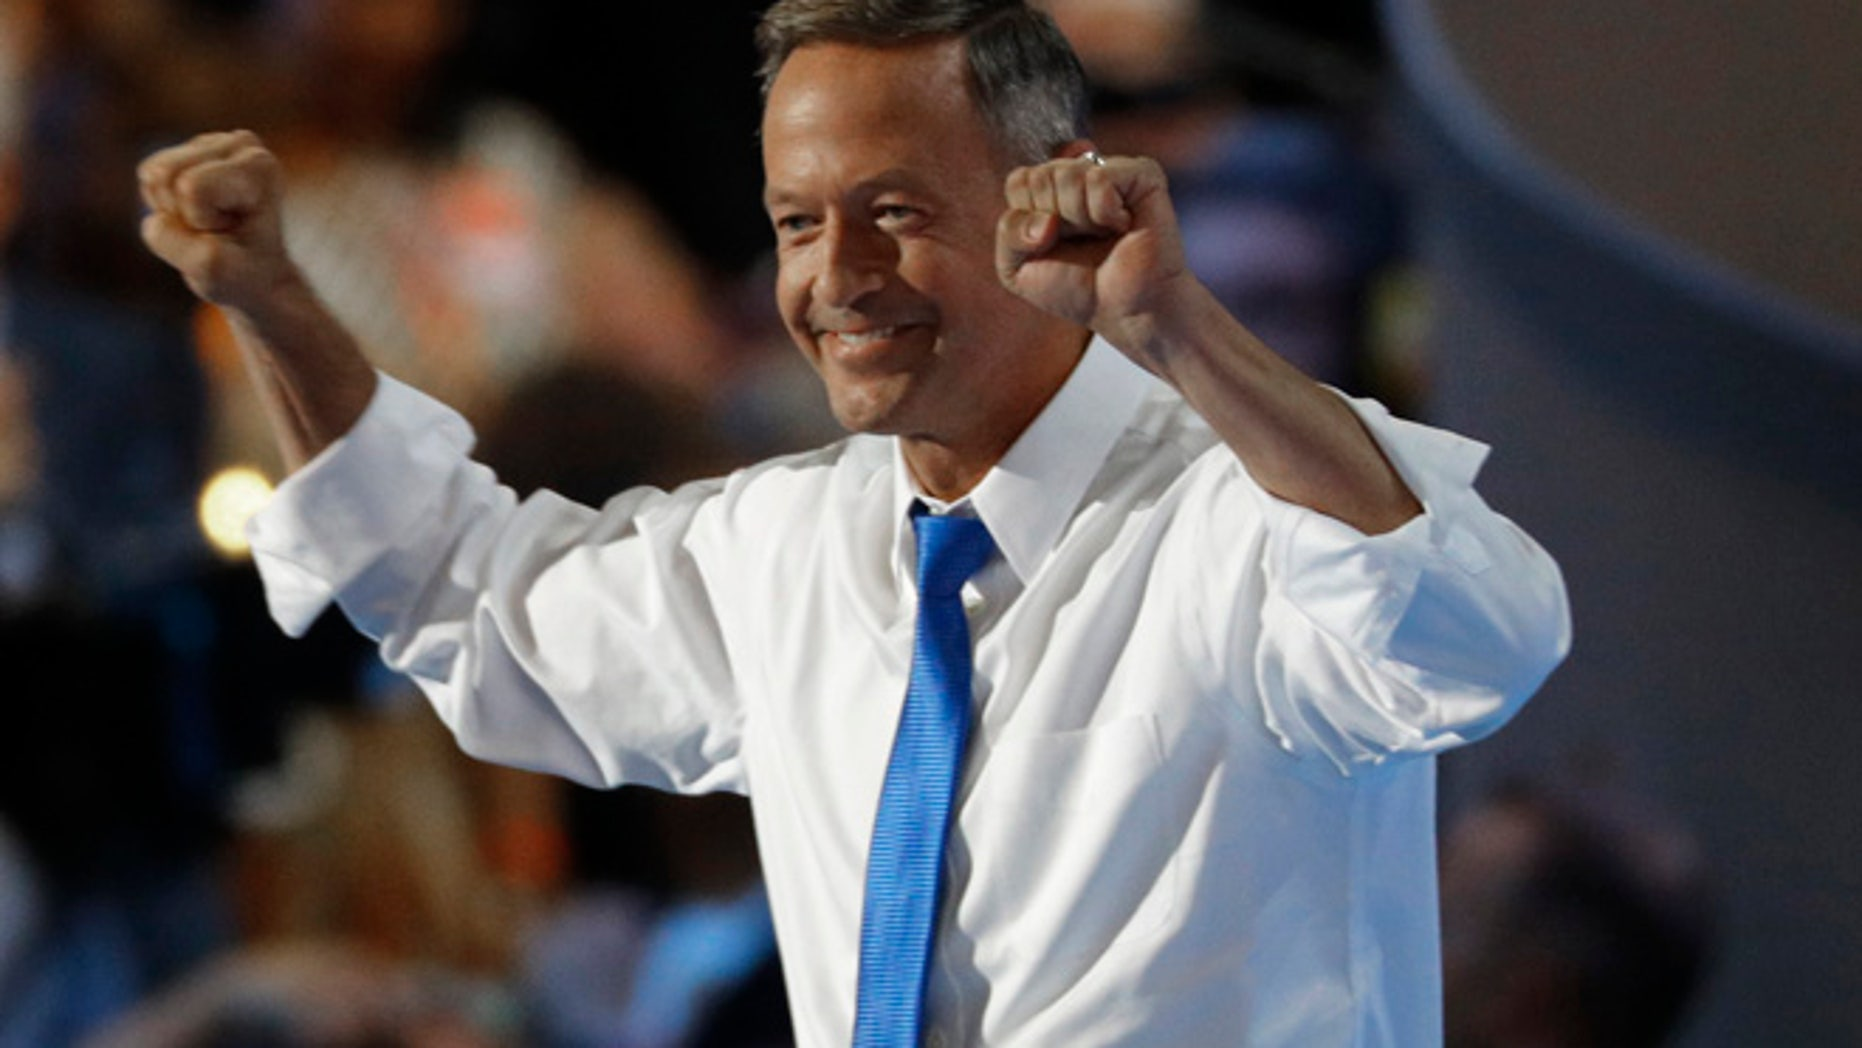 July 27, 2016: Former Governor of Maryland Martin O'Malley takes the stage at the Democratic National Convention in Philadelphia, Pennsylvania.